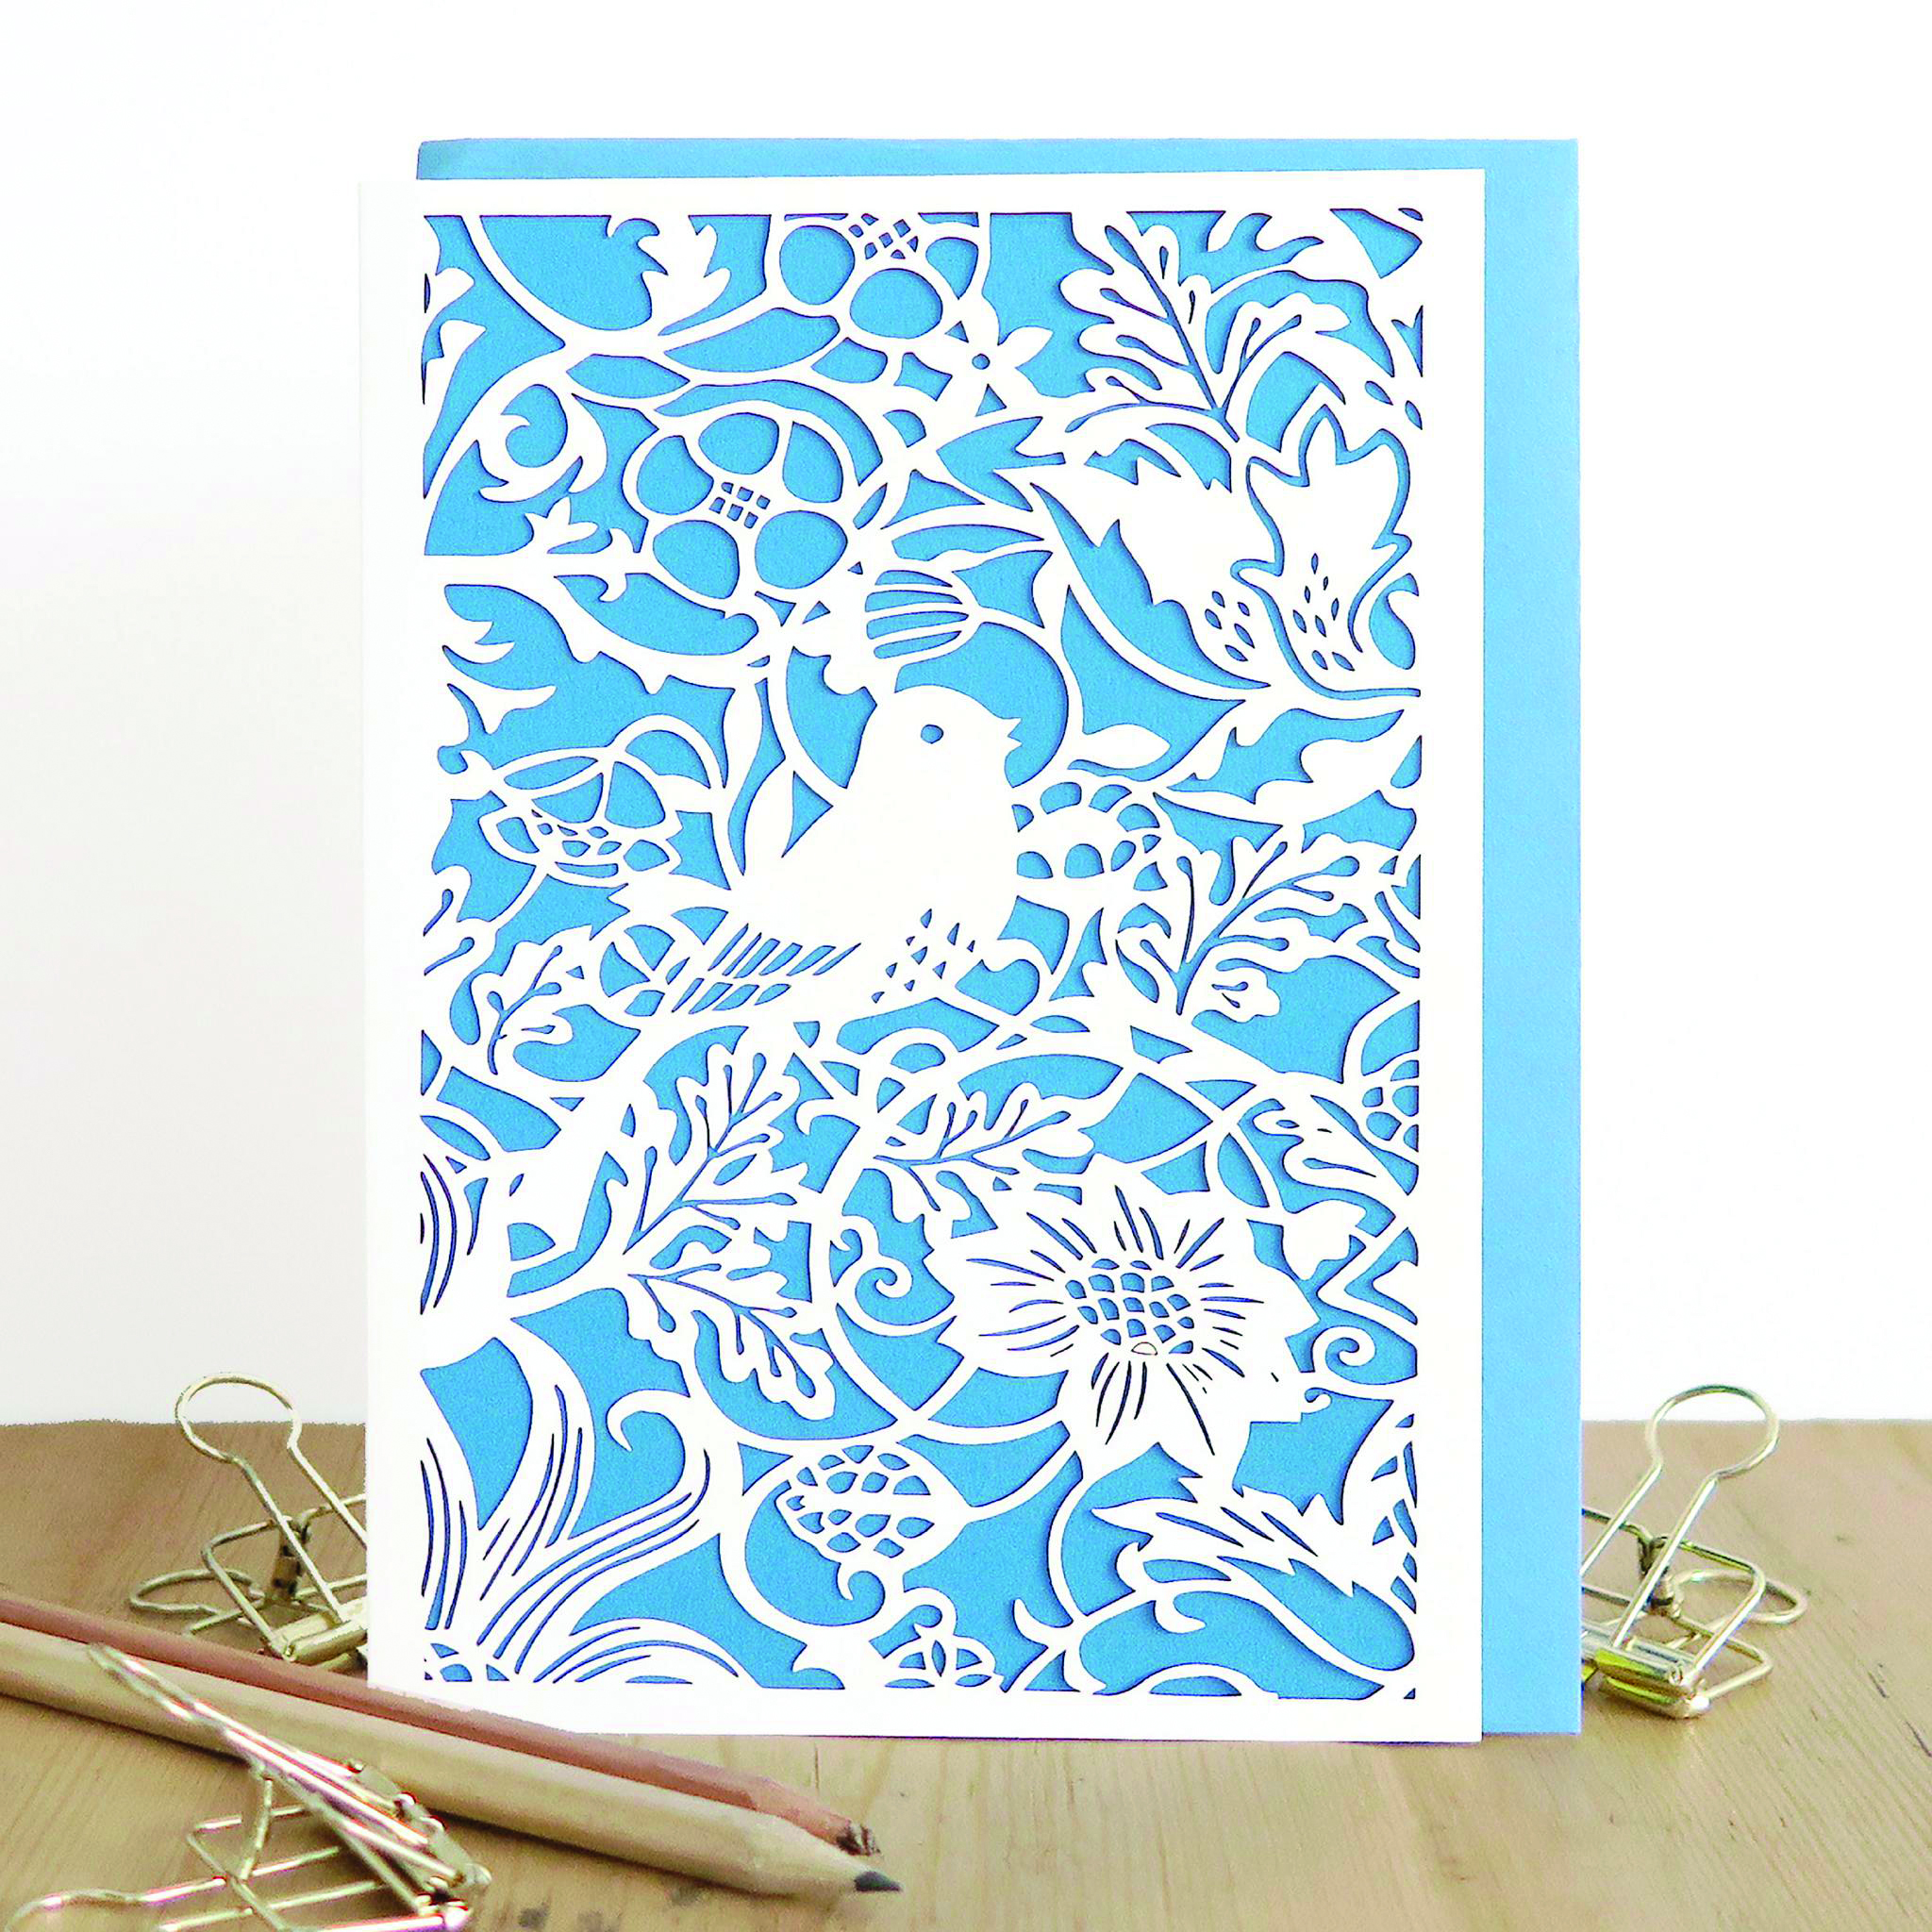 Greetings card market value rises and writingmatters gifts this is the highest ever recorded public spend on greeting cards in this country and means that the huge rise in popularity of social media and other m4hsunfo